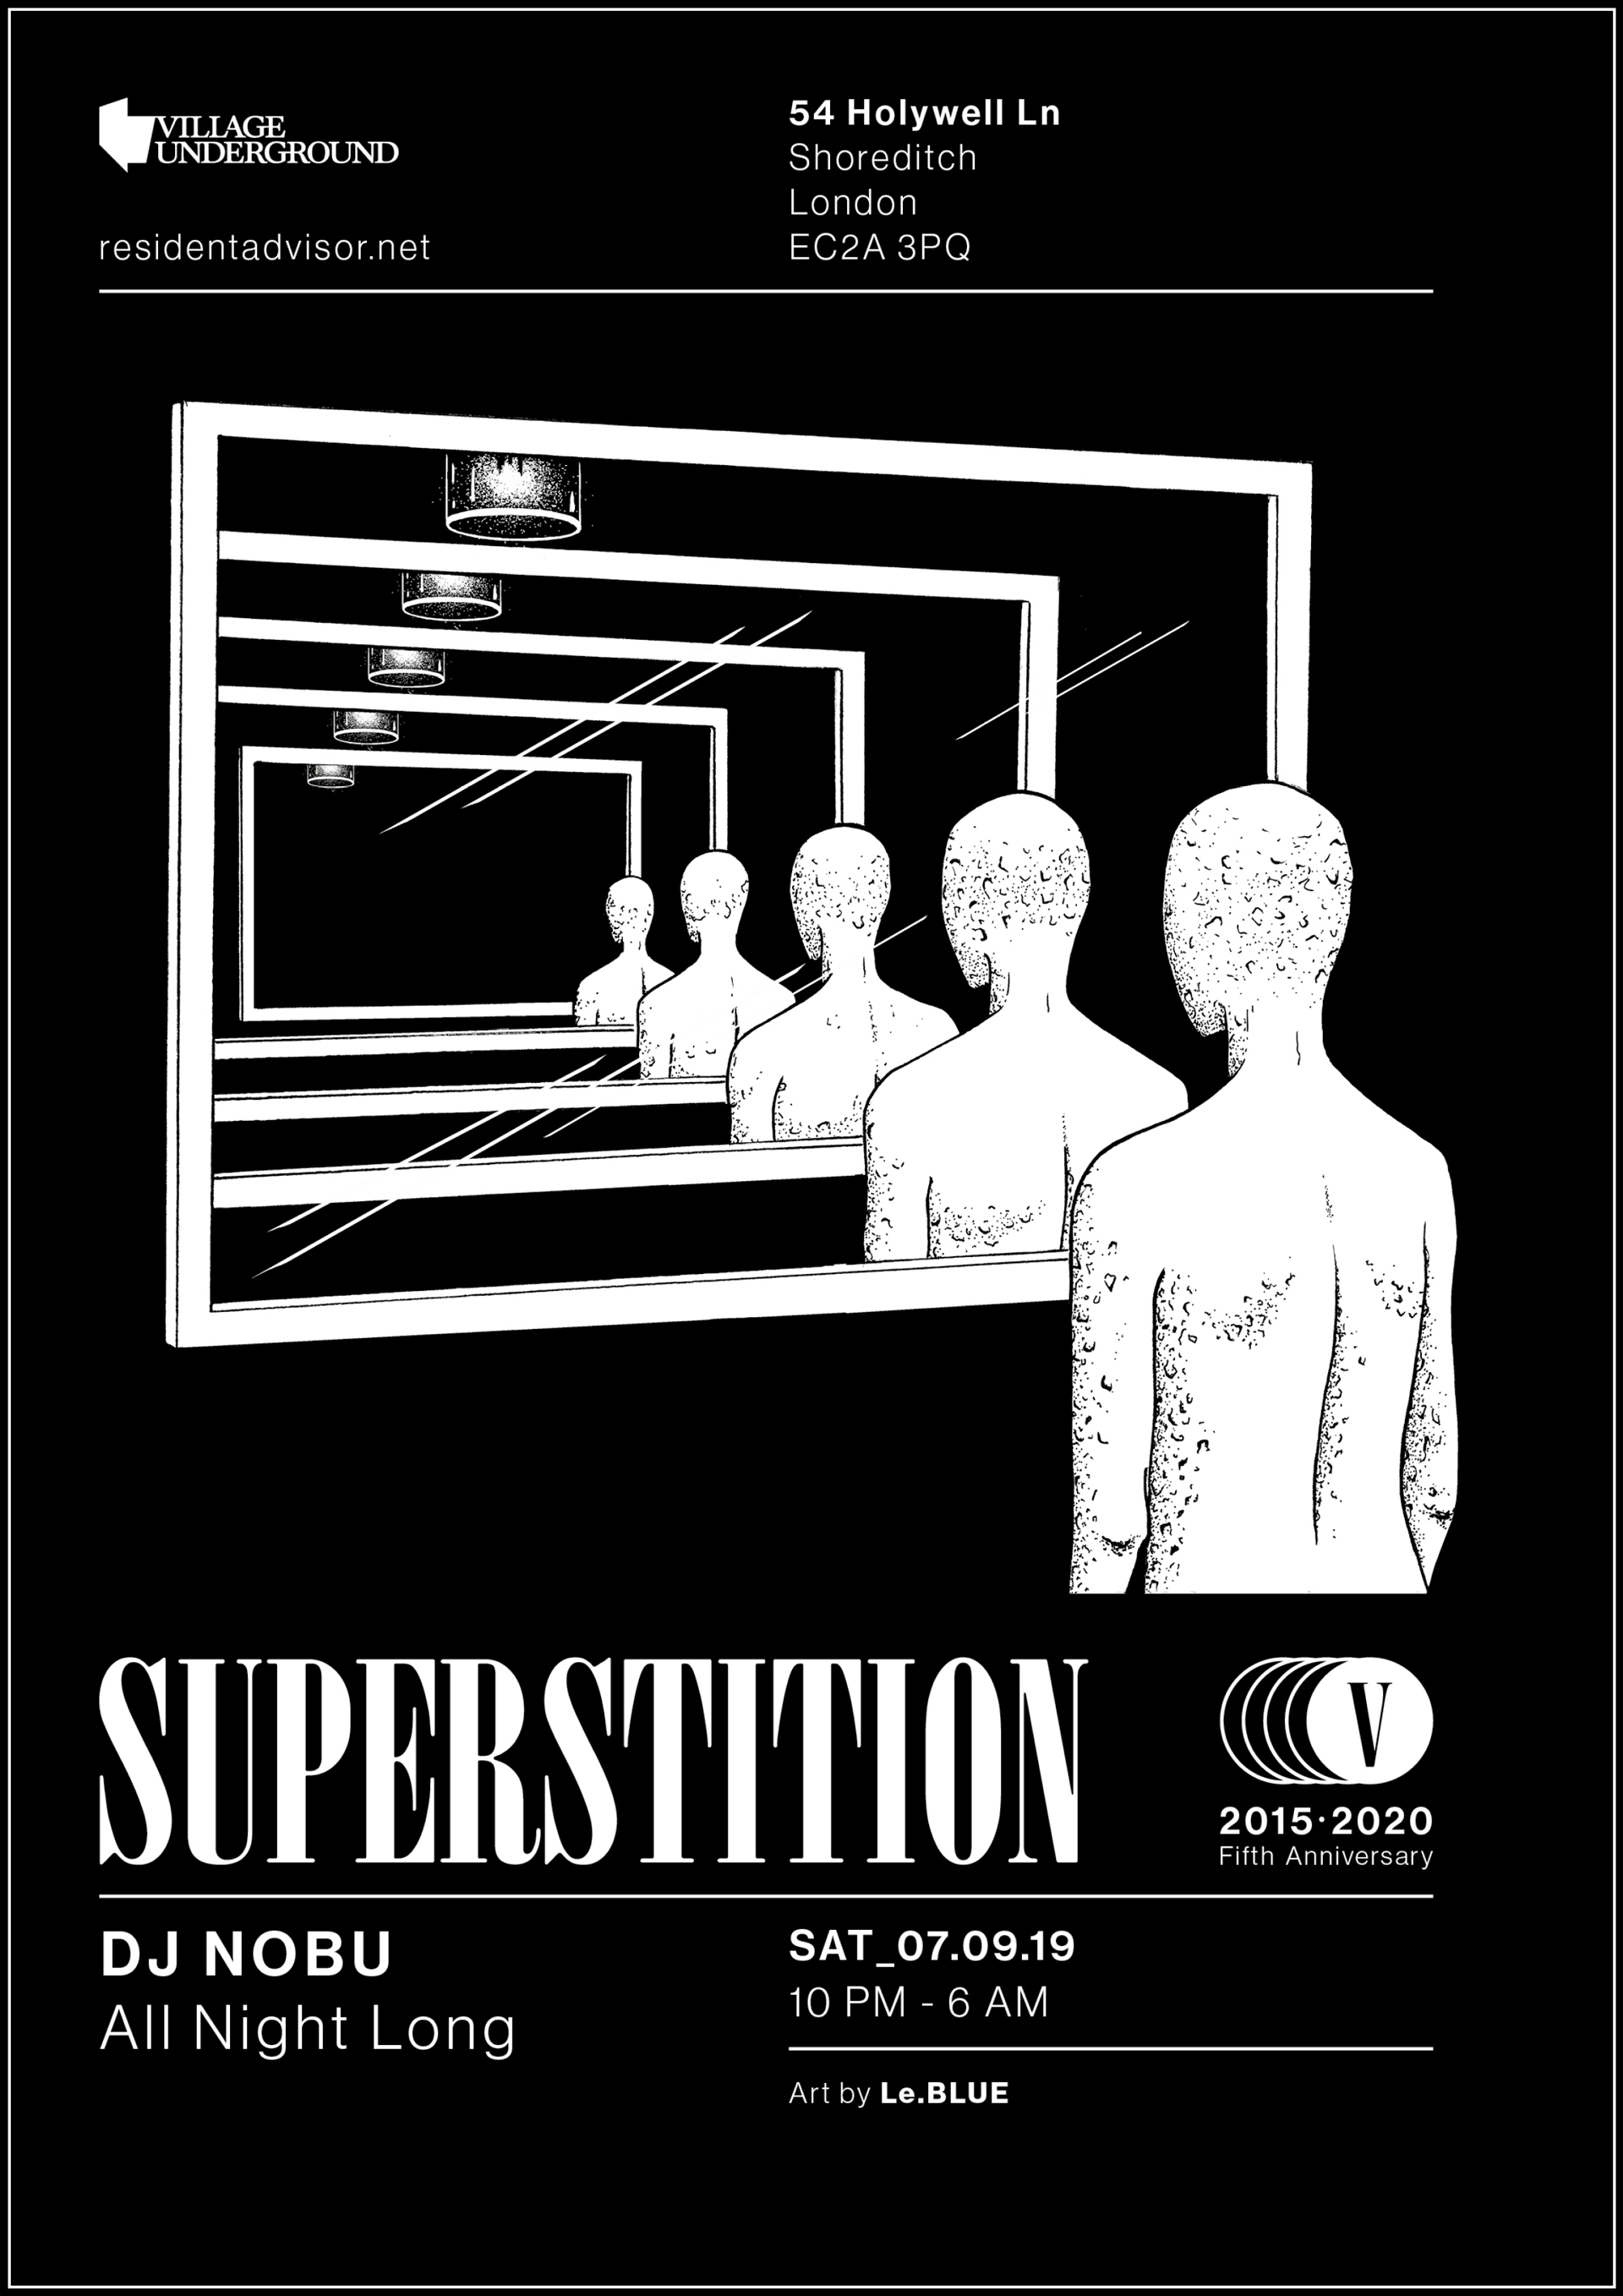 superstition_website2.jpg